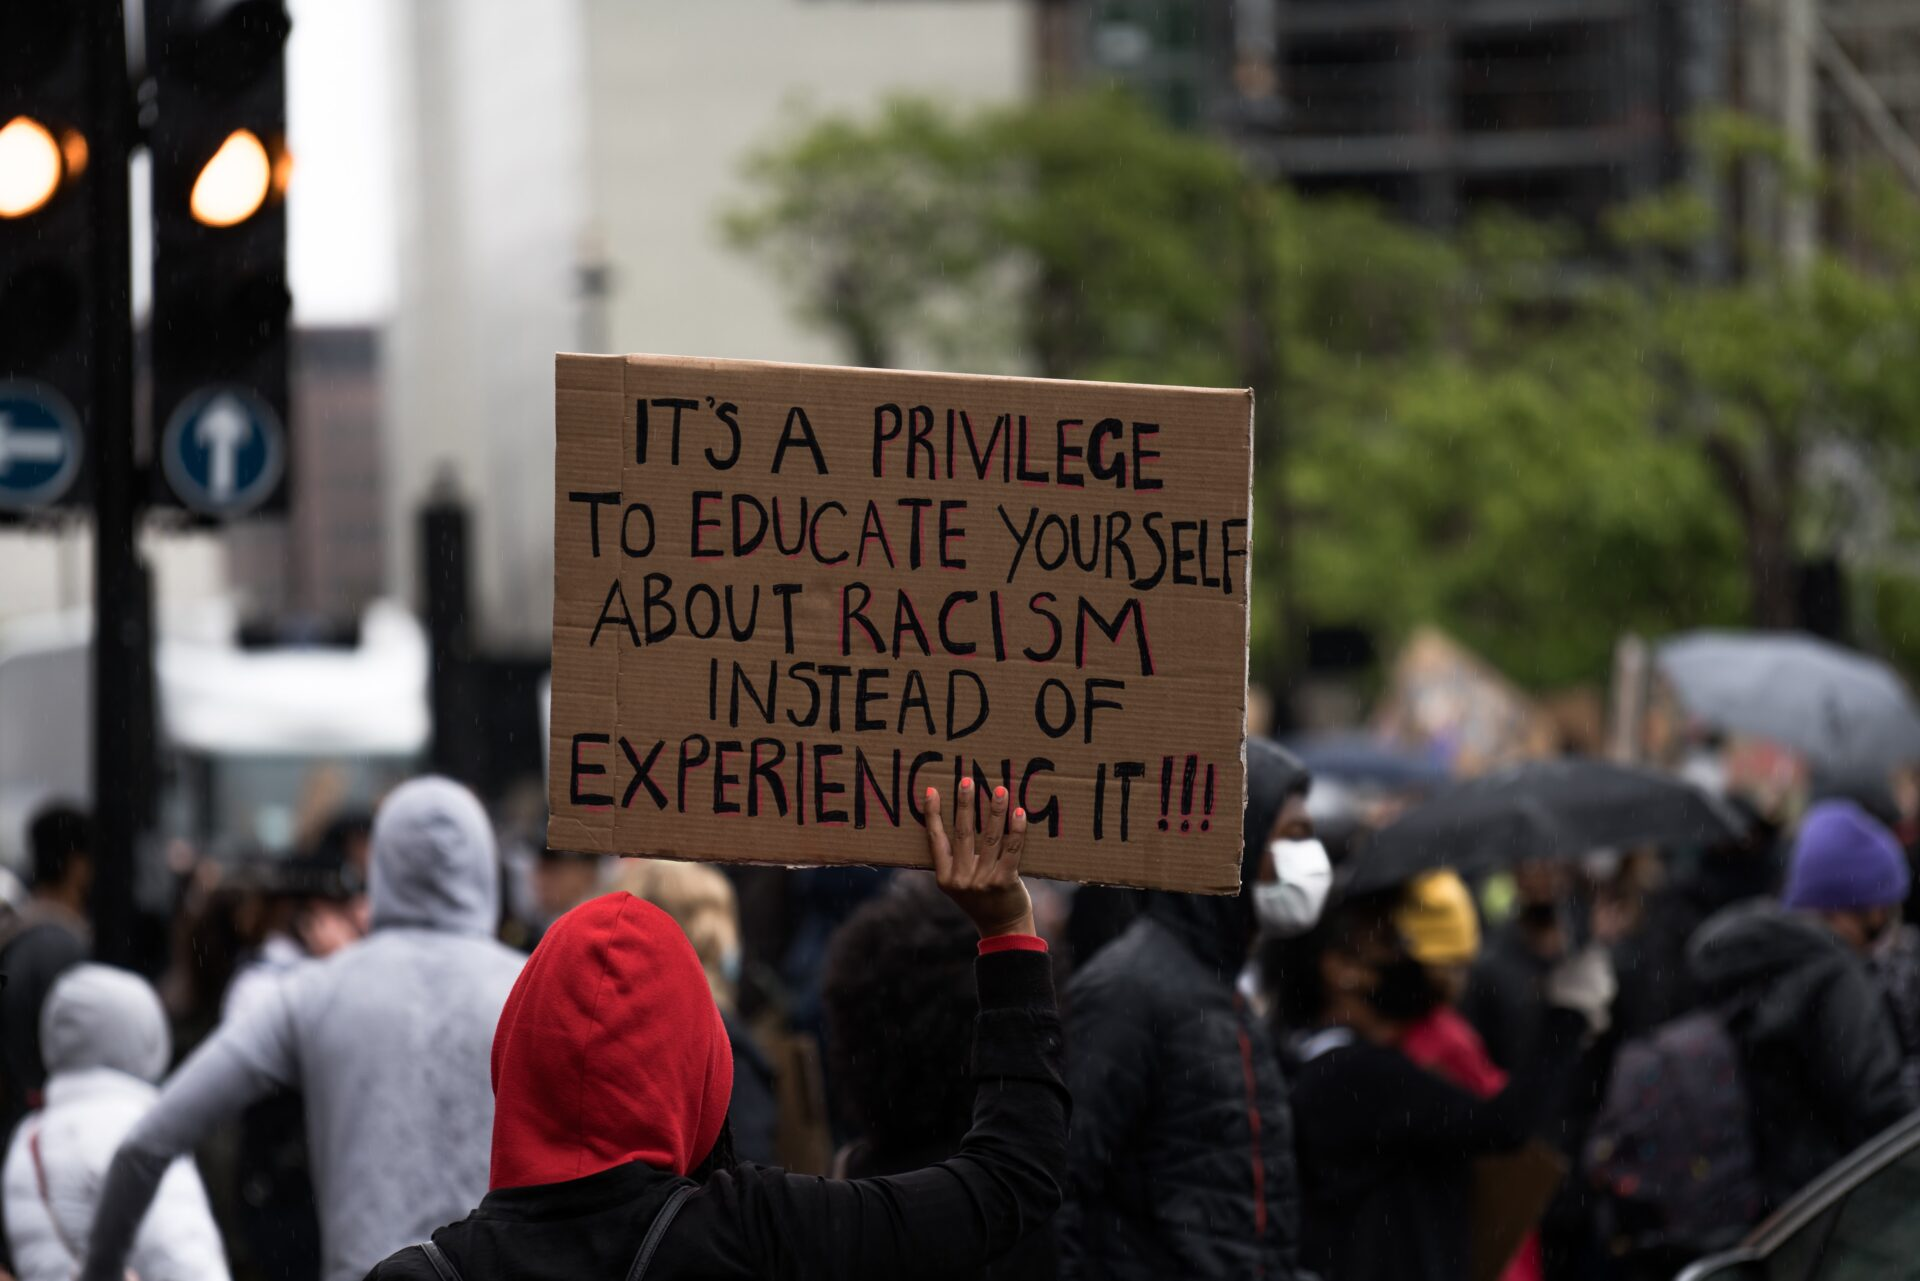 Diversity, inclusion and anti-racism resources